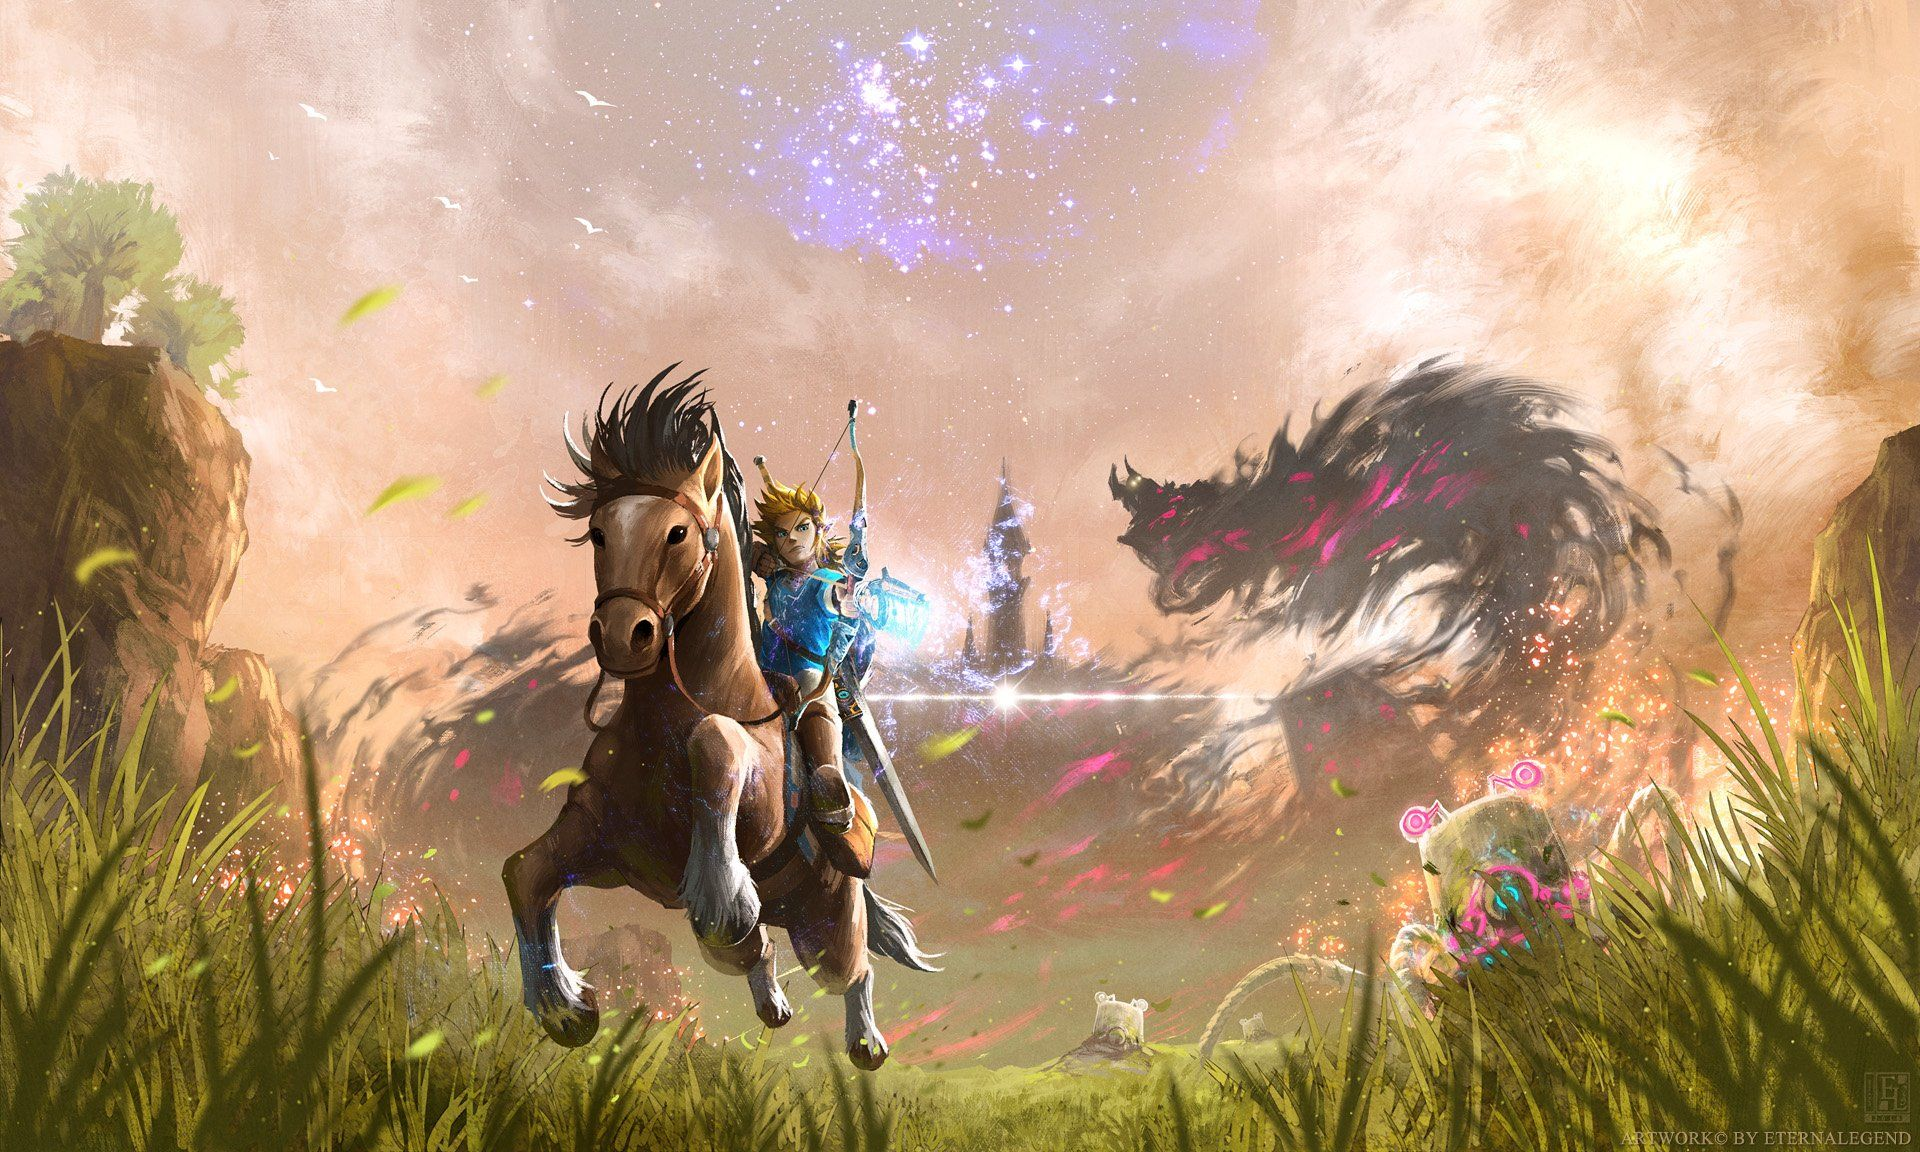 Video Game The Legend Of Zelda Breath Of The Wild Link Zelda Wallpaper Legend Of Zelda Breath Of The Wild Legend Of Zelda Breath